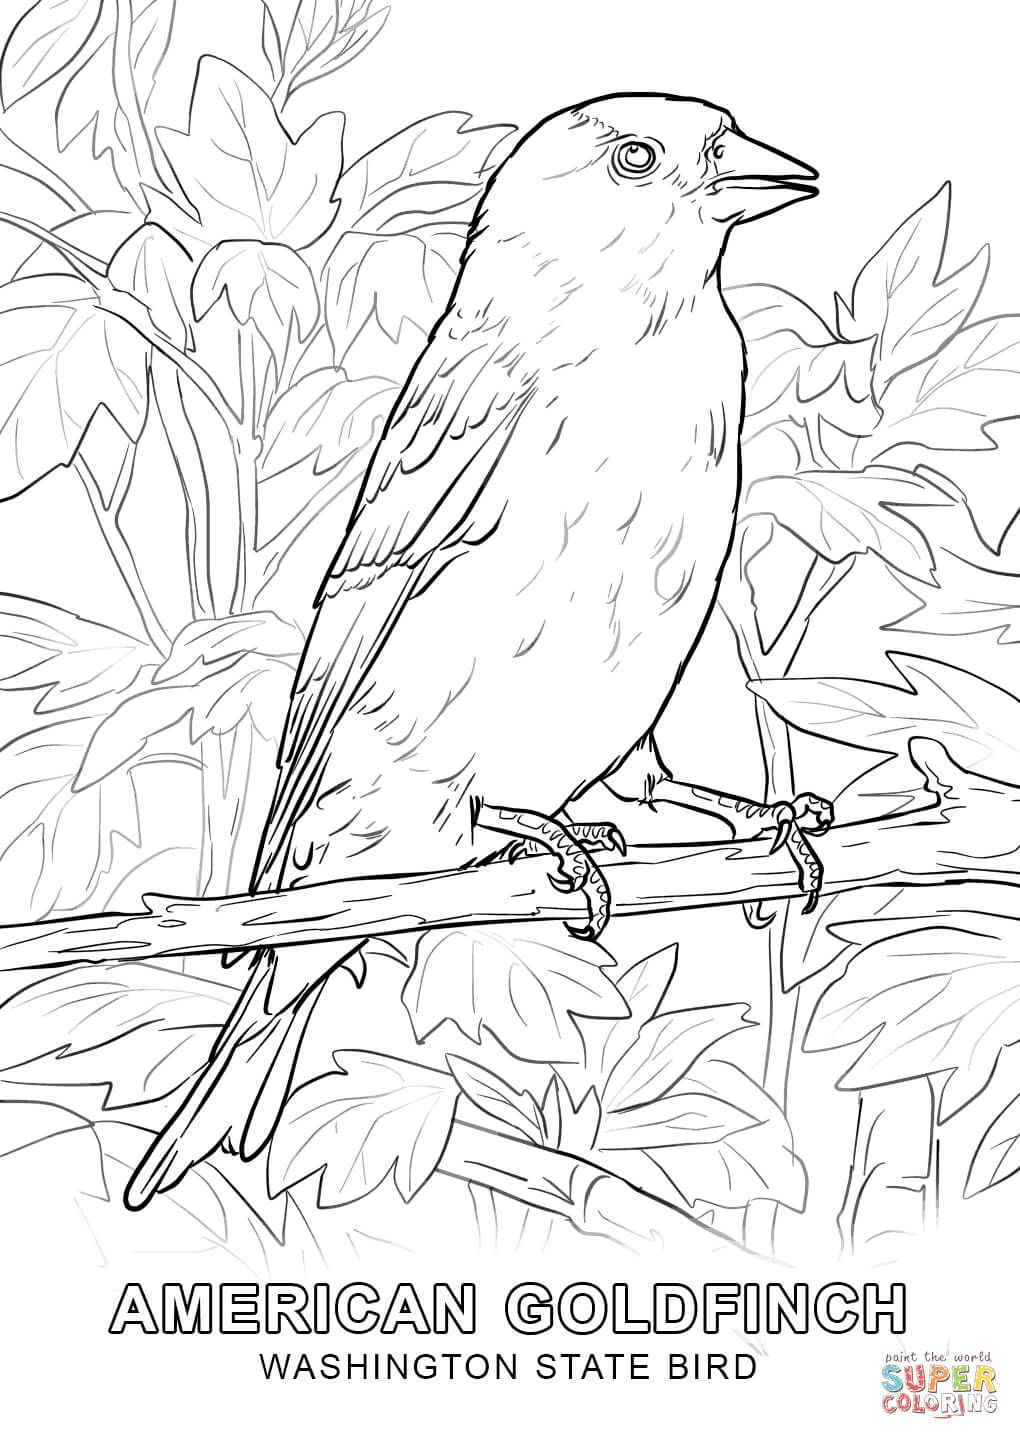 Washington State Bird Coloring Page Jpg 1020 1440 Bird